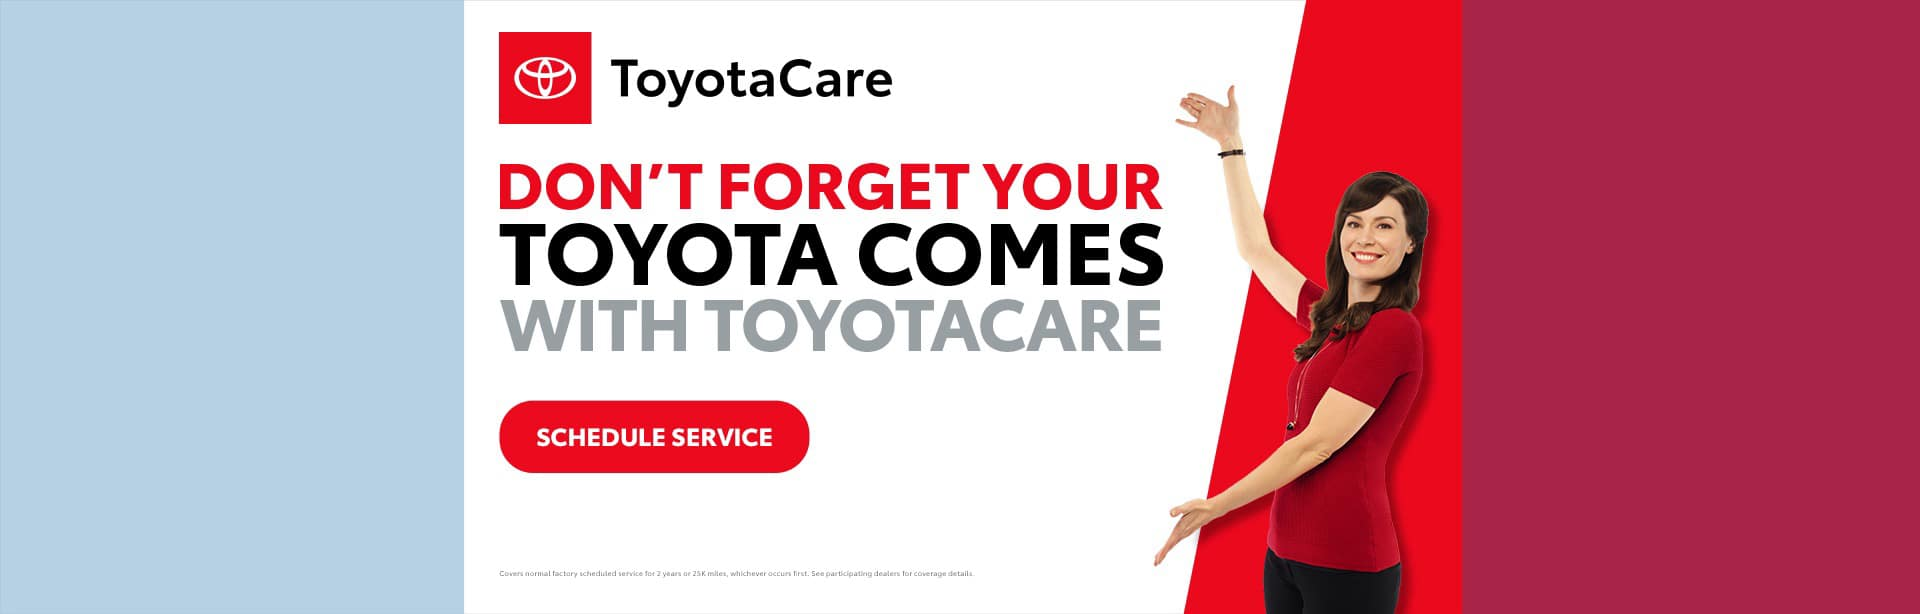 10-19_01_National-2019—October—NAT—ToyotaCare-Home-Page_1920x614_679b_All-Models_O_xta